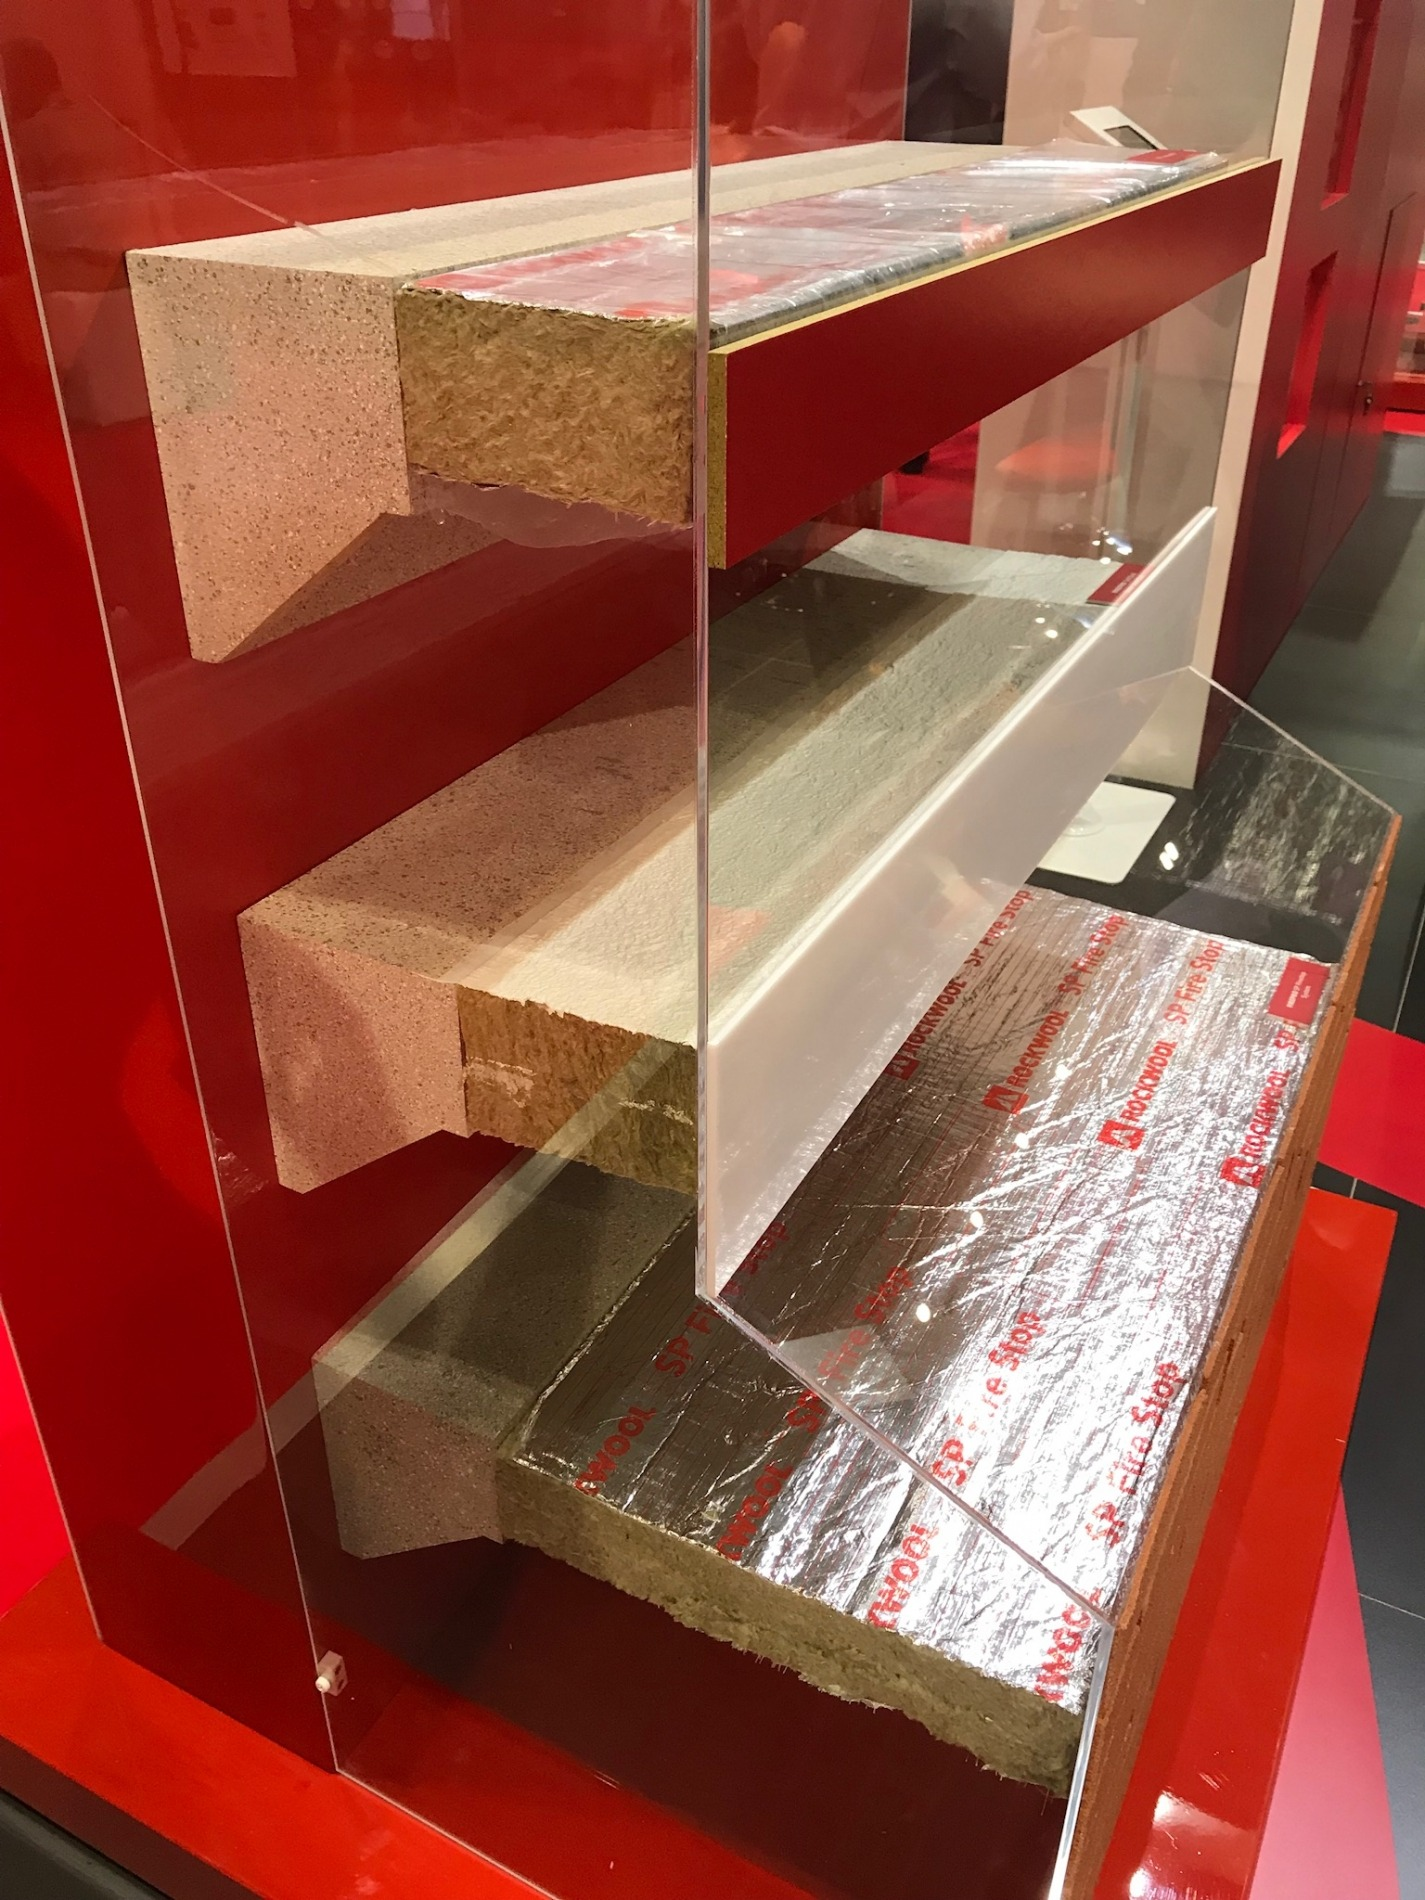 a1 firestop are specialists in cavity barrier installation